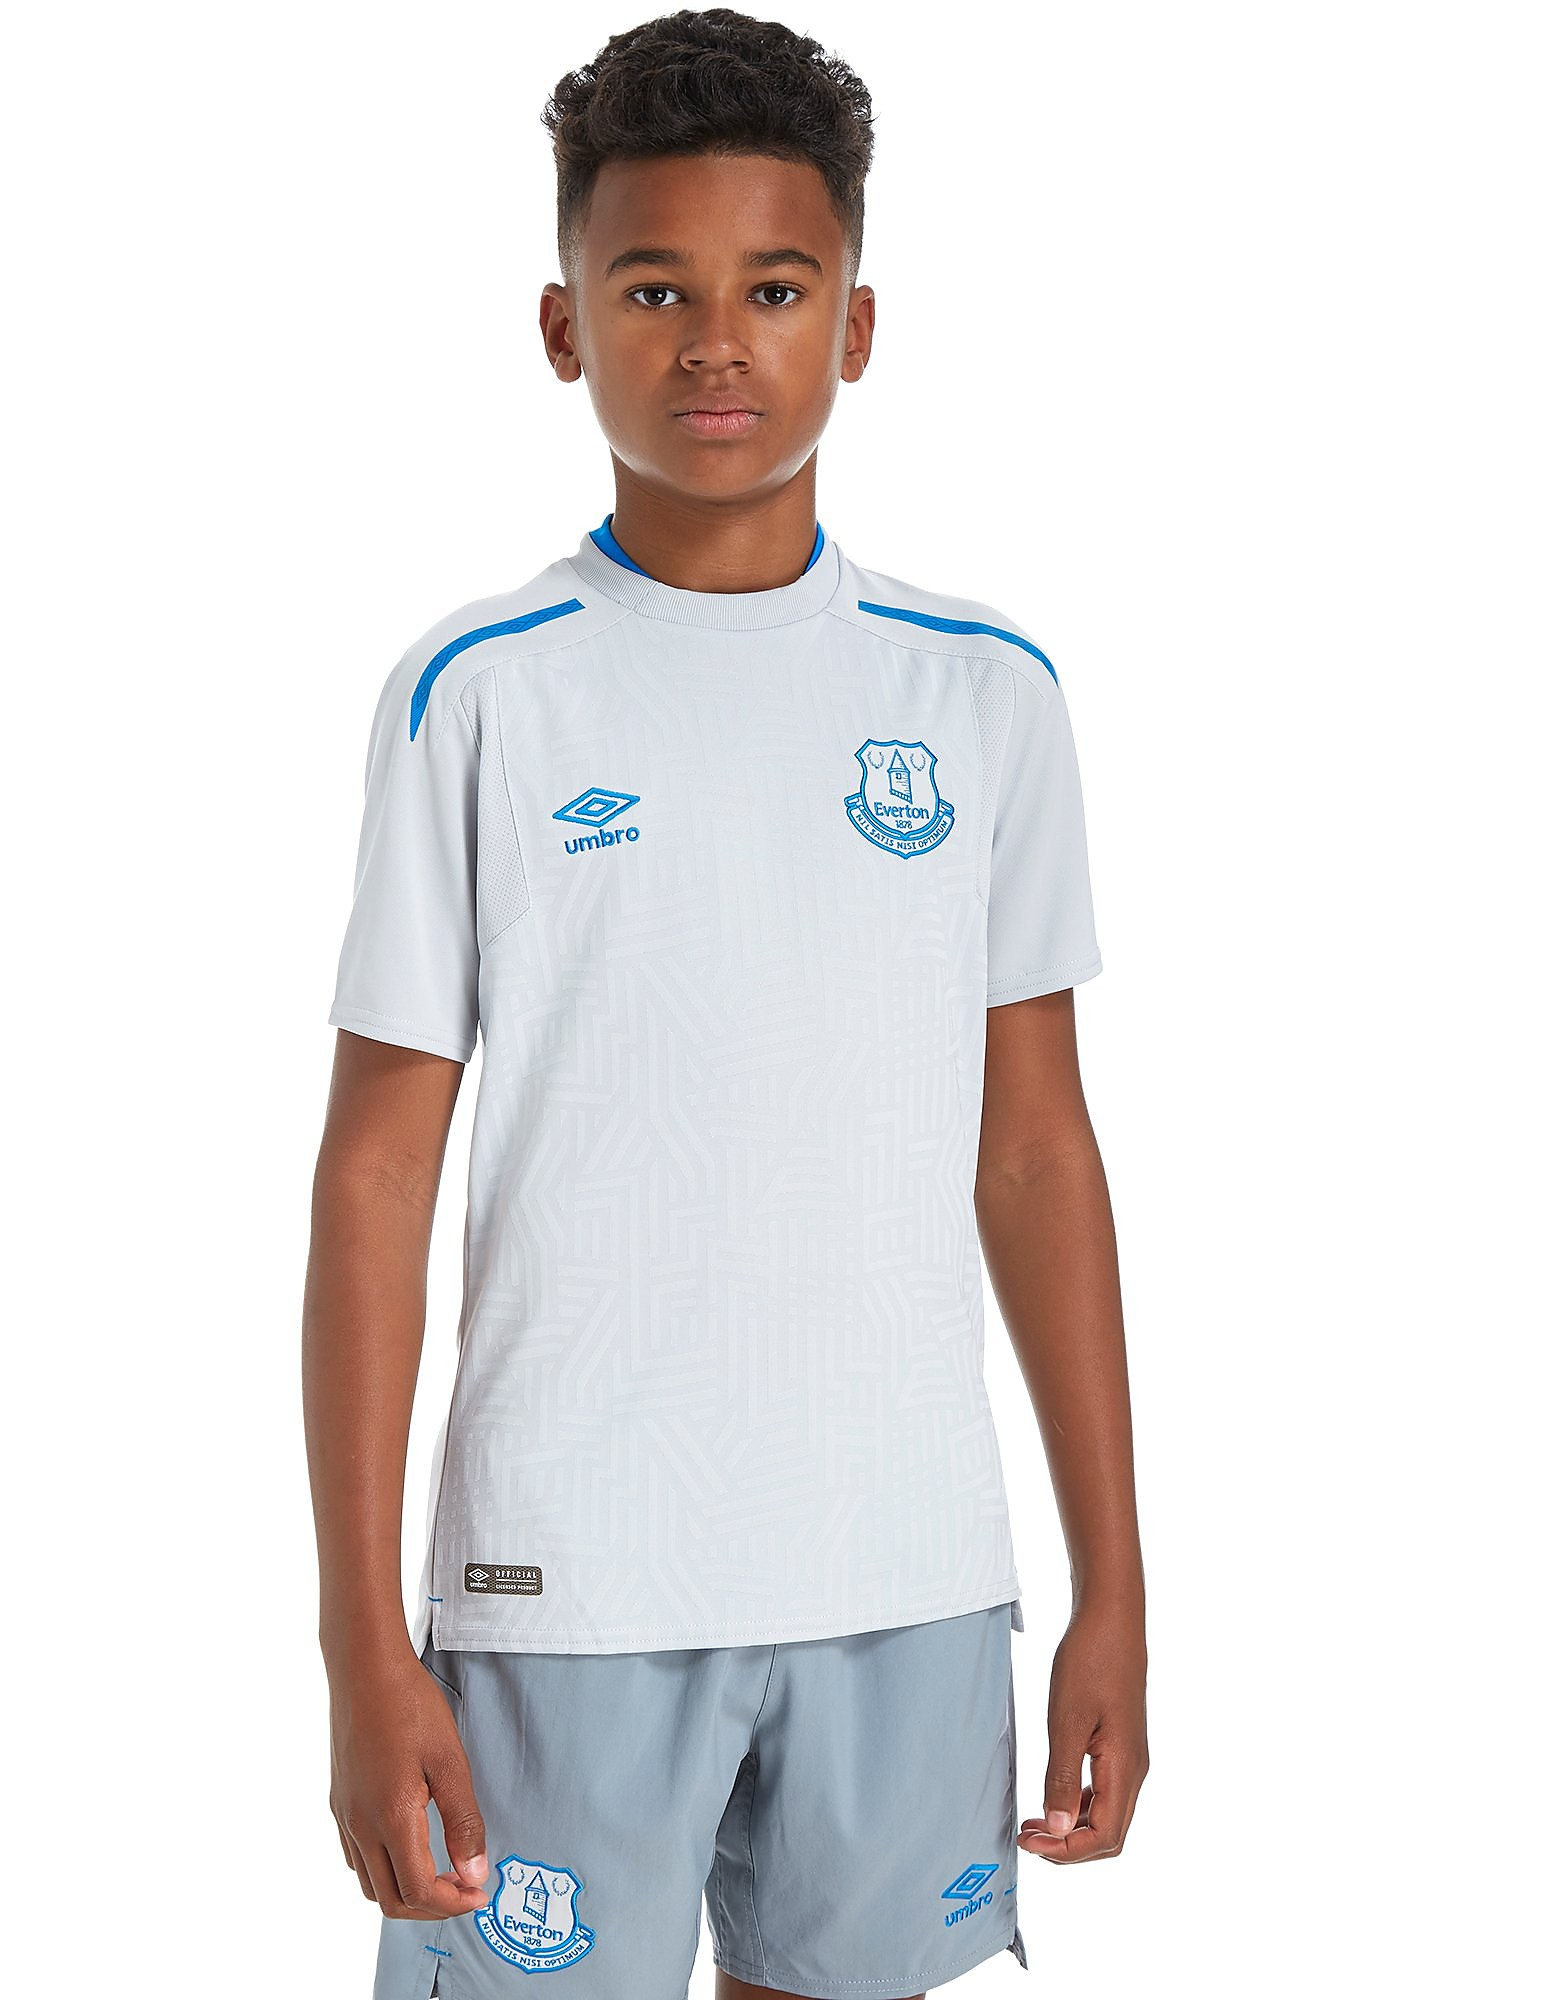 Umbro Everton FC 2017/18 Away Shirt Junior